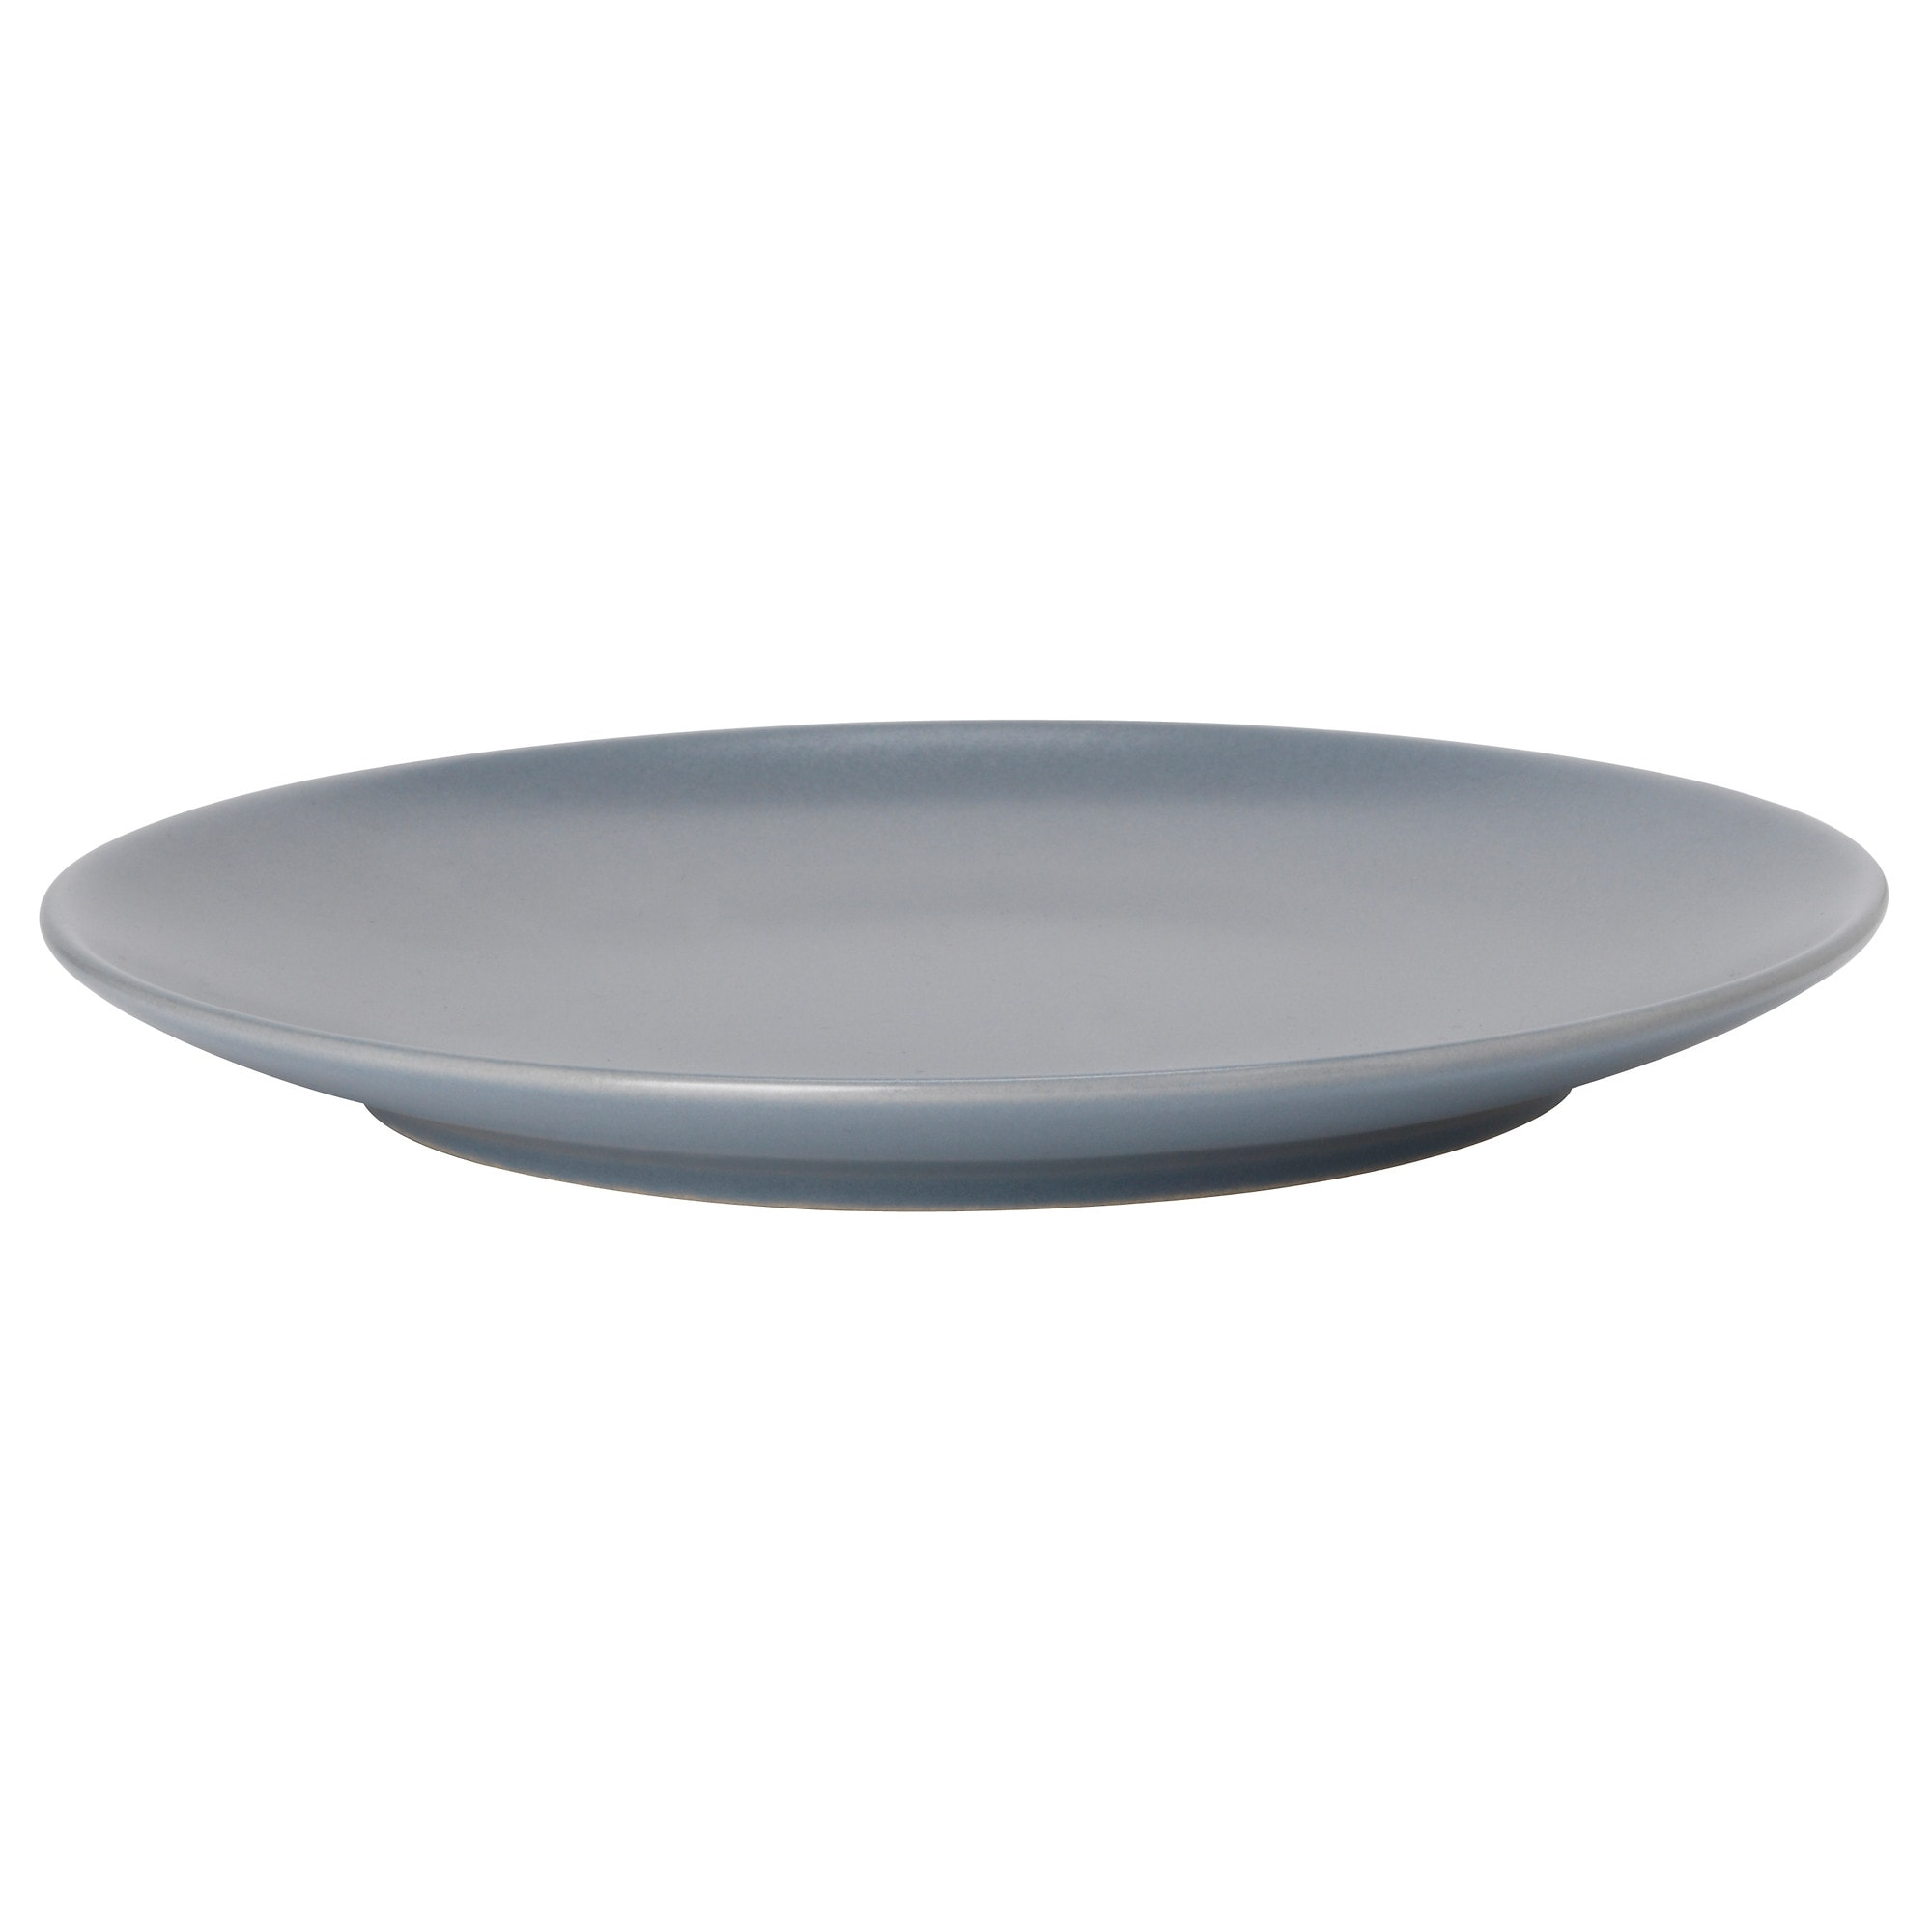 glass dinner plates online india. dinera plate, gray-blue diameter: 10 \ glass dinner plates online india s